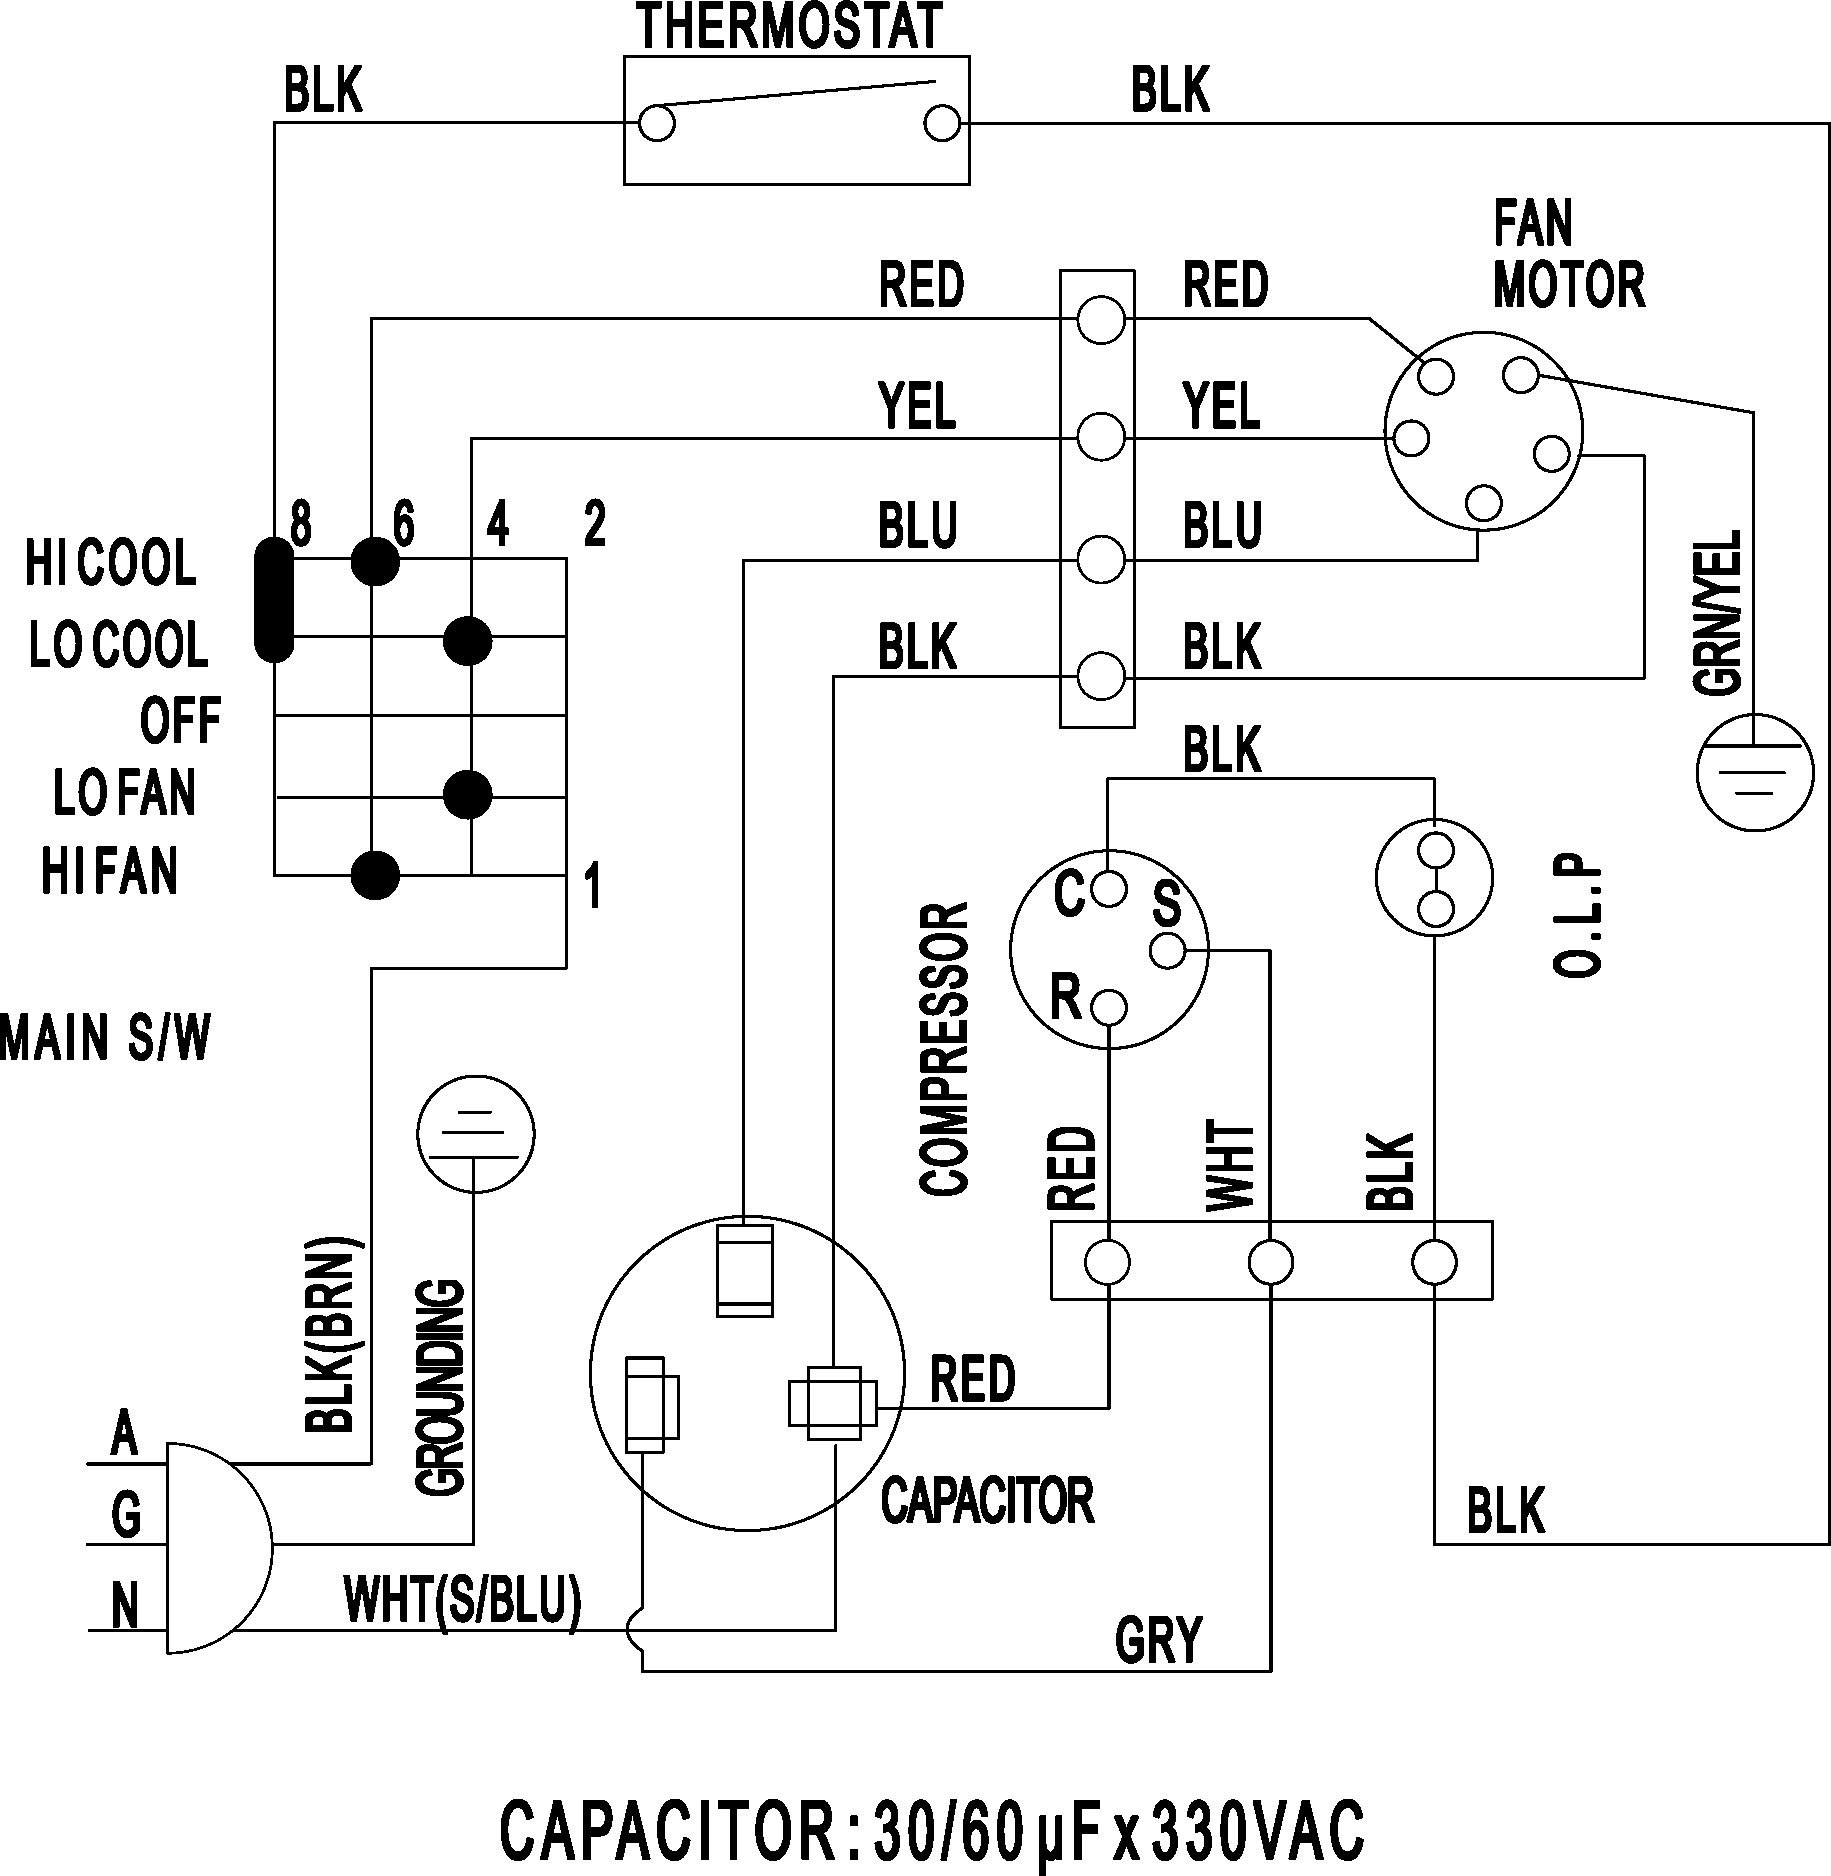 Wiring Diagram For Quad Receptacle | Wiring Diagram - Receptacle Wiring Diagram Examples